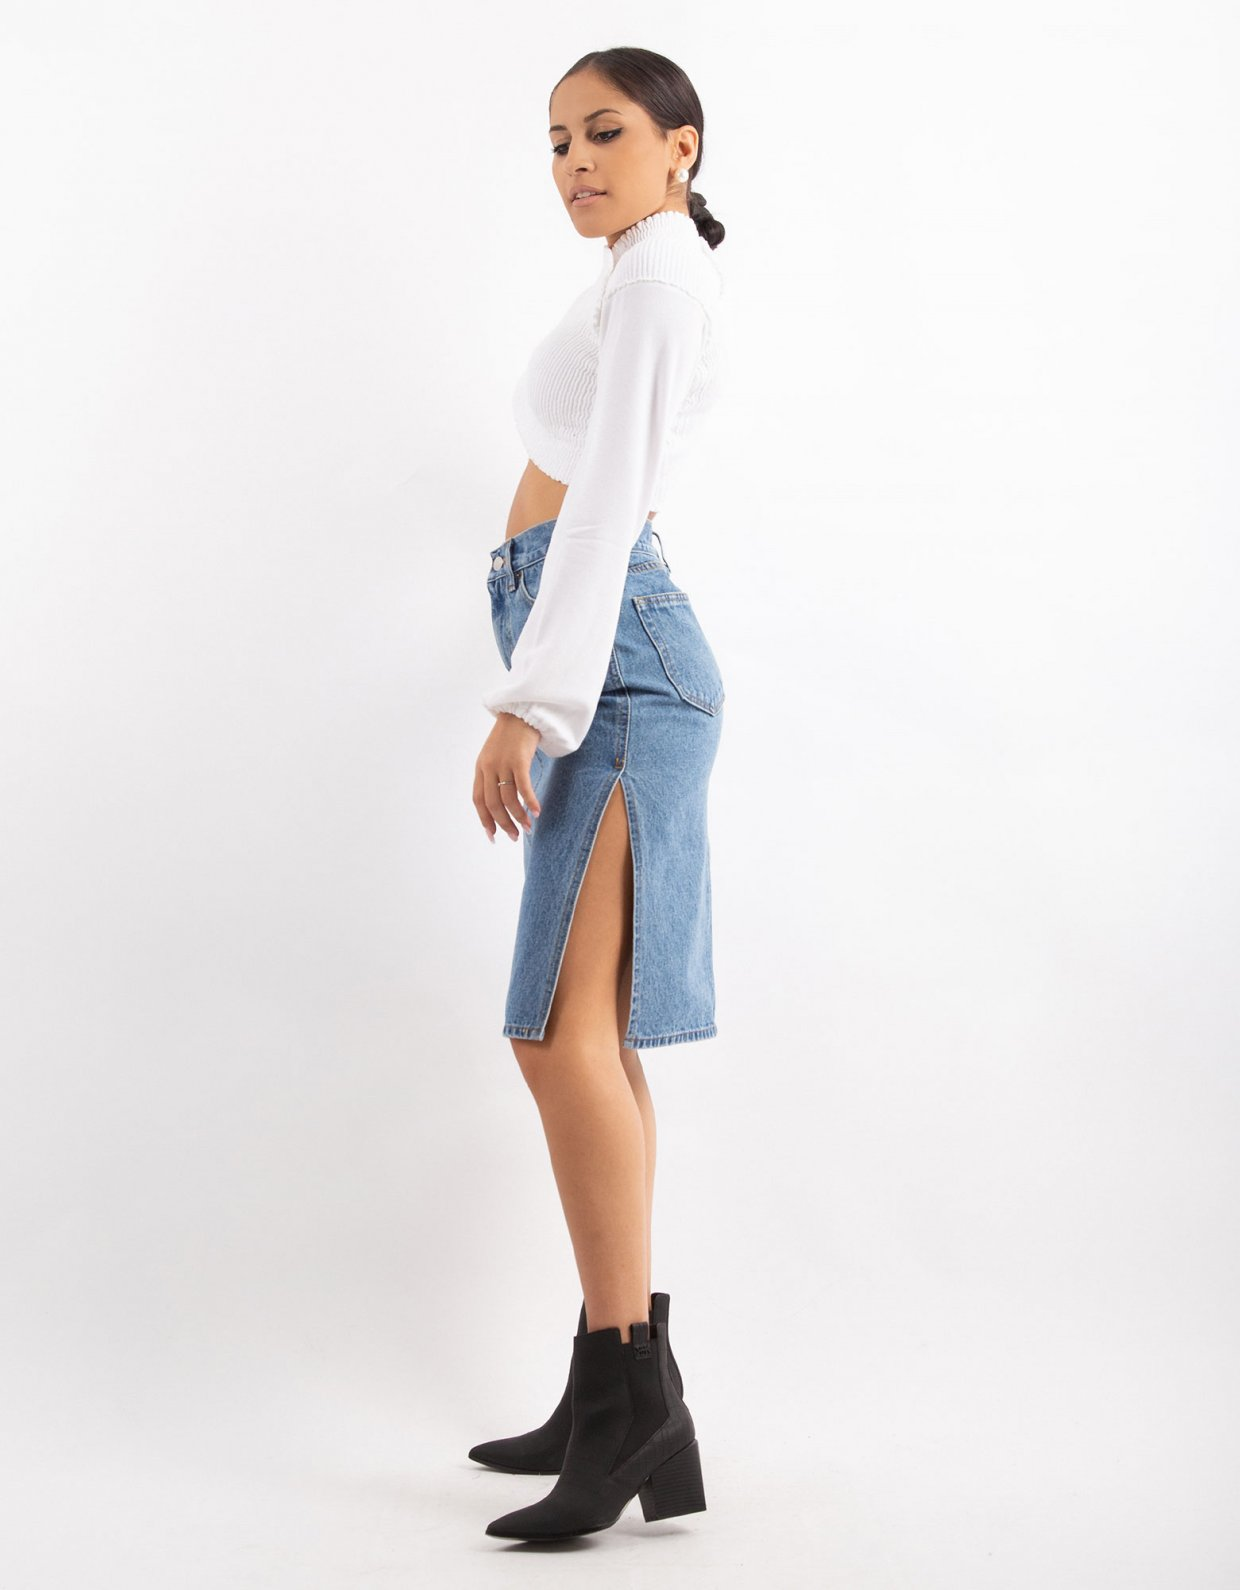 Salt & Pepper Denice dance me denim skirt